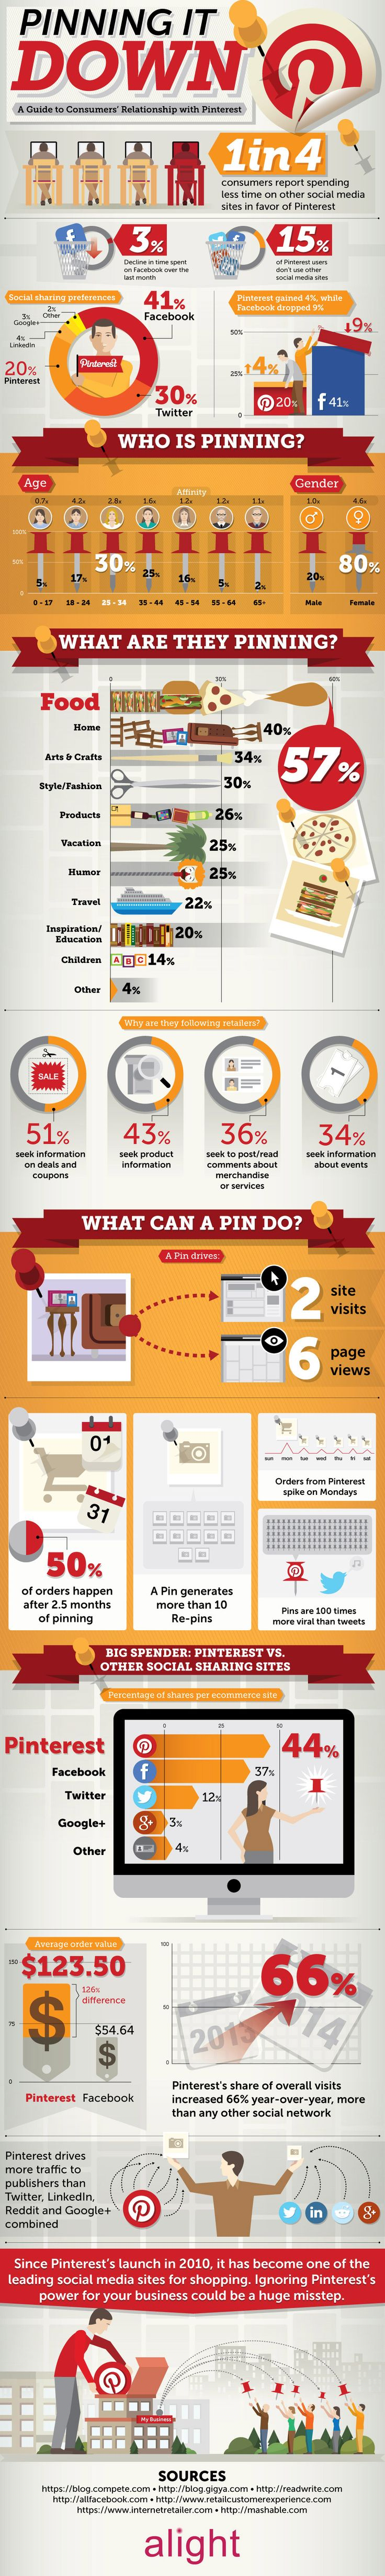 Pinning it Down: A Guide to Consumers' Relationship with Pinterest #infographic   via #BornToBeSocial - Pinterest Marketing